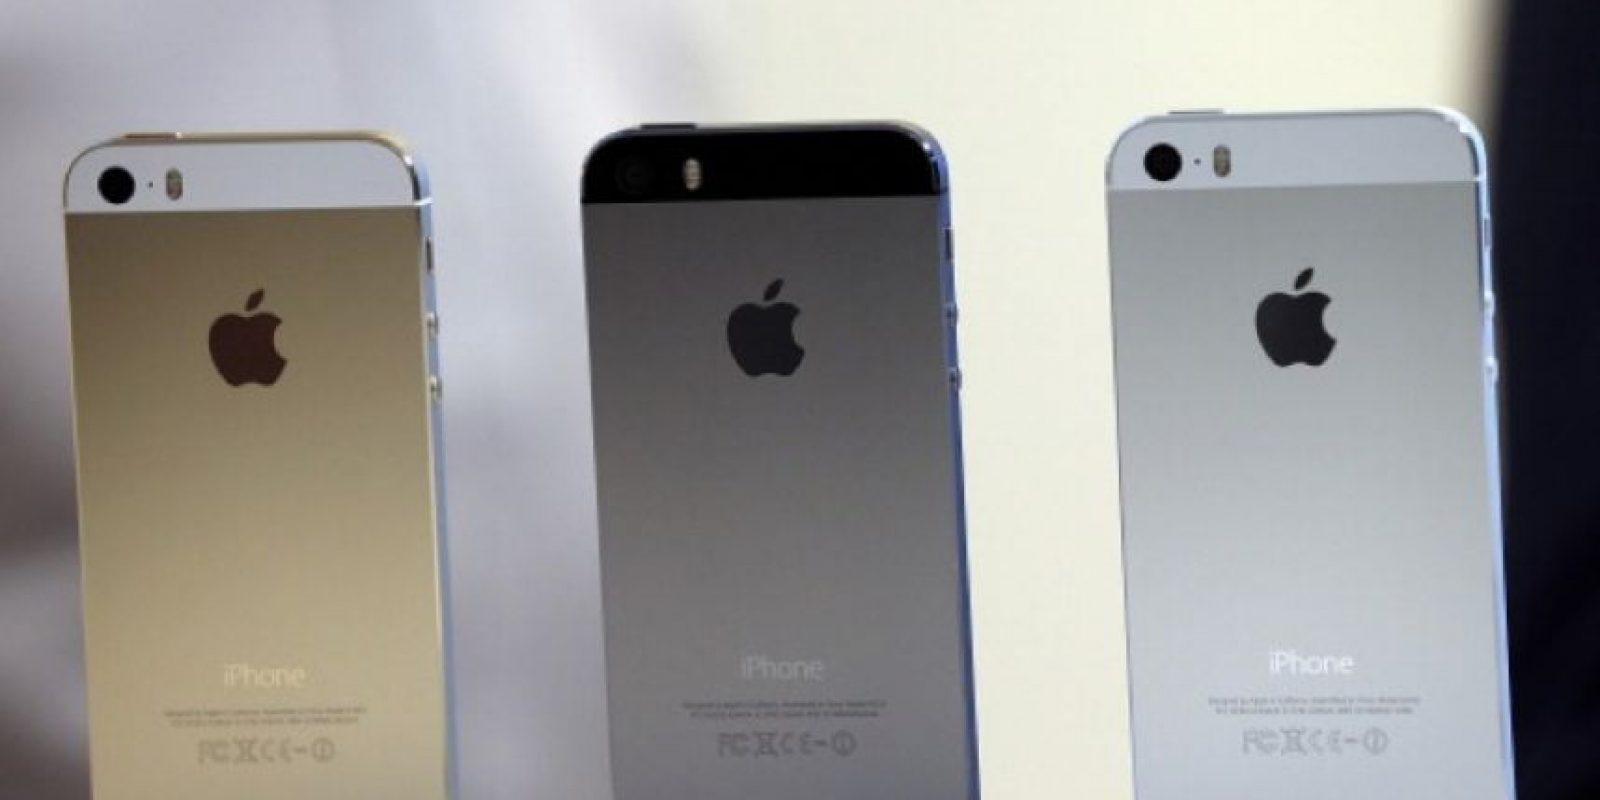 iPhone 5s (2013) Foto: Getty Images